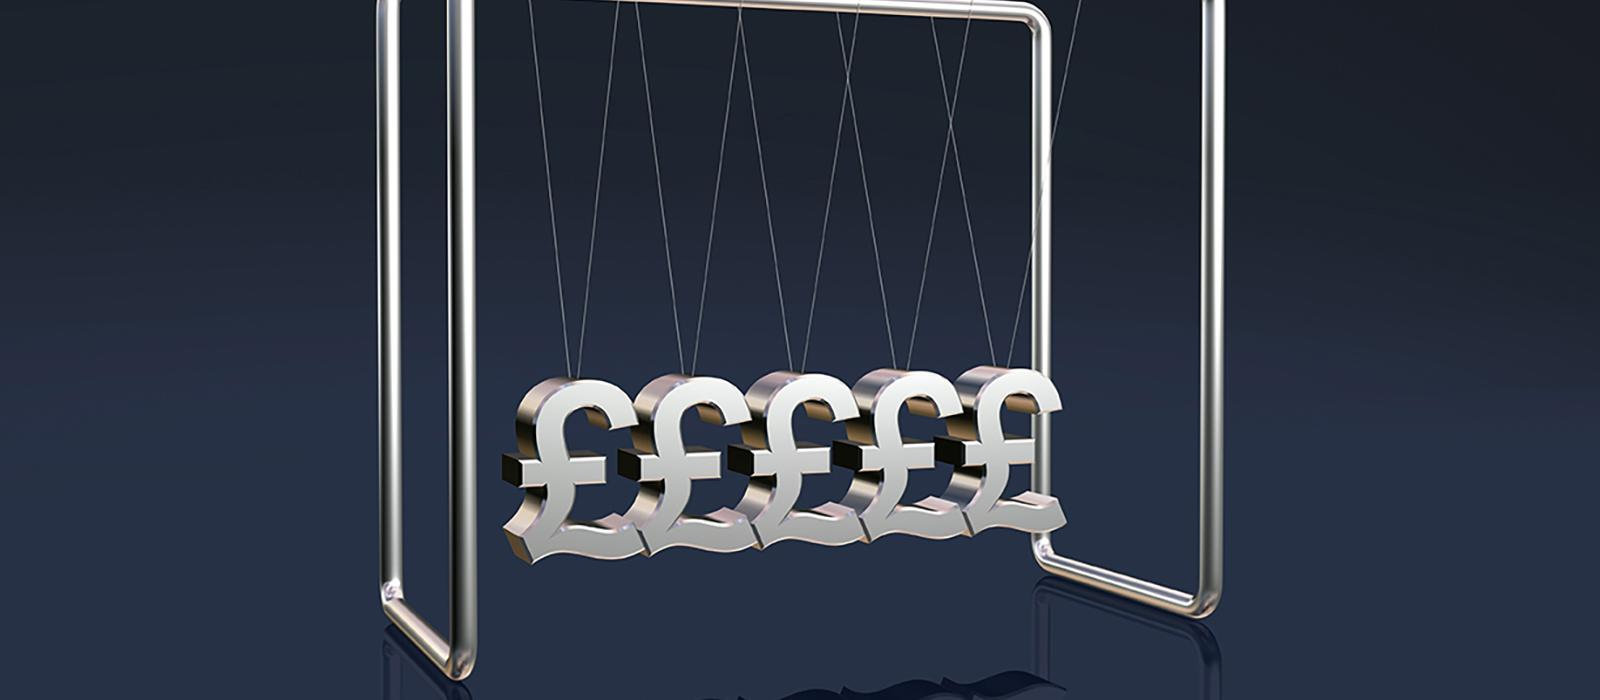 Imagery for To swing or not to swing? Alternative pricing rules and financial stability